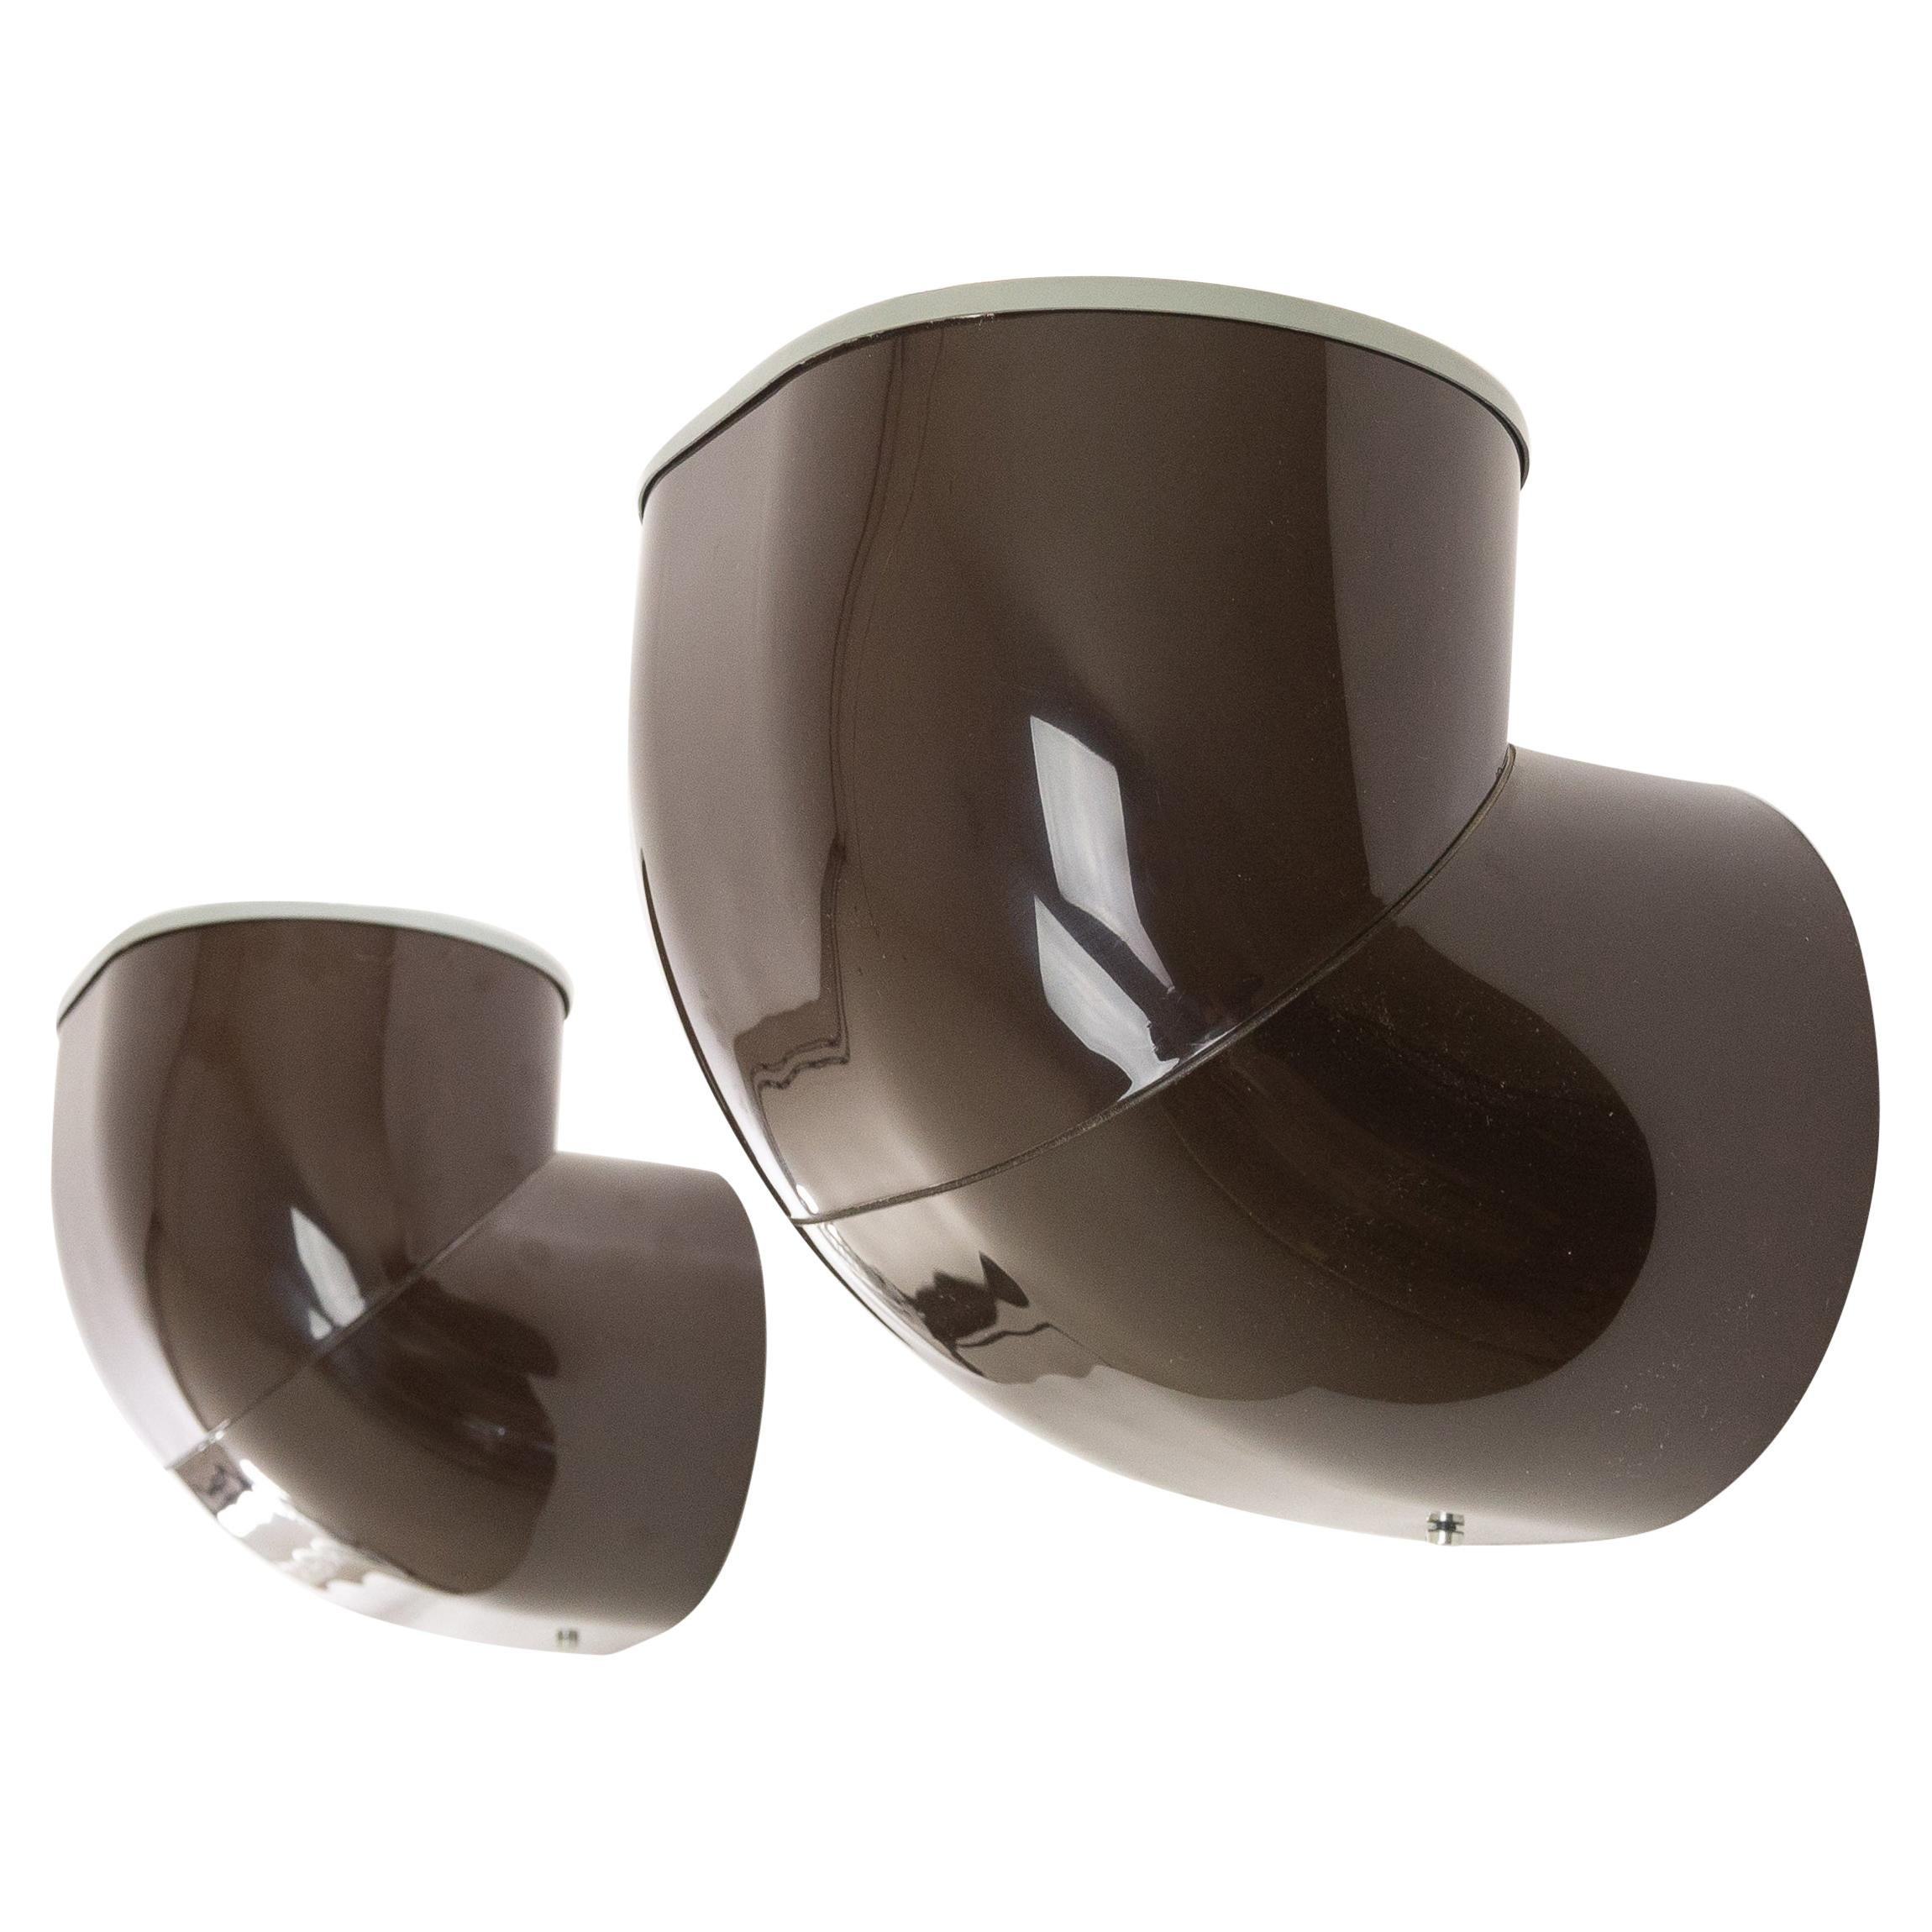 Pair of Brown Gomito Wall Lamps by Gae Aulenti for Stilnovo, 1970s